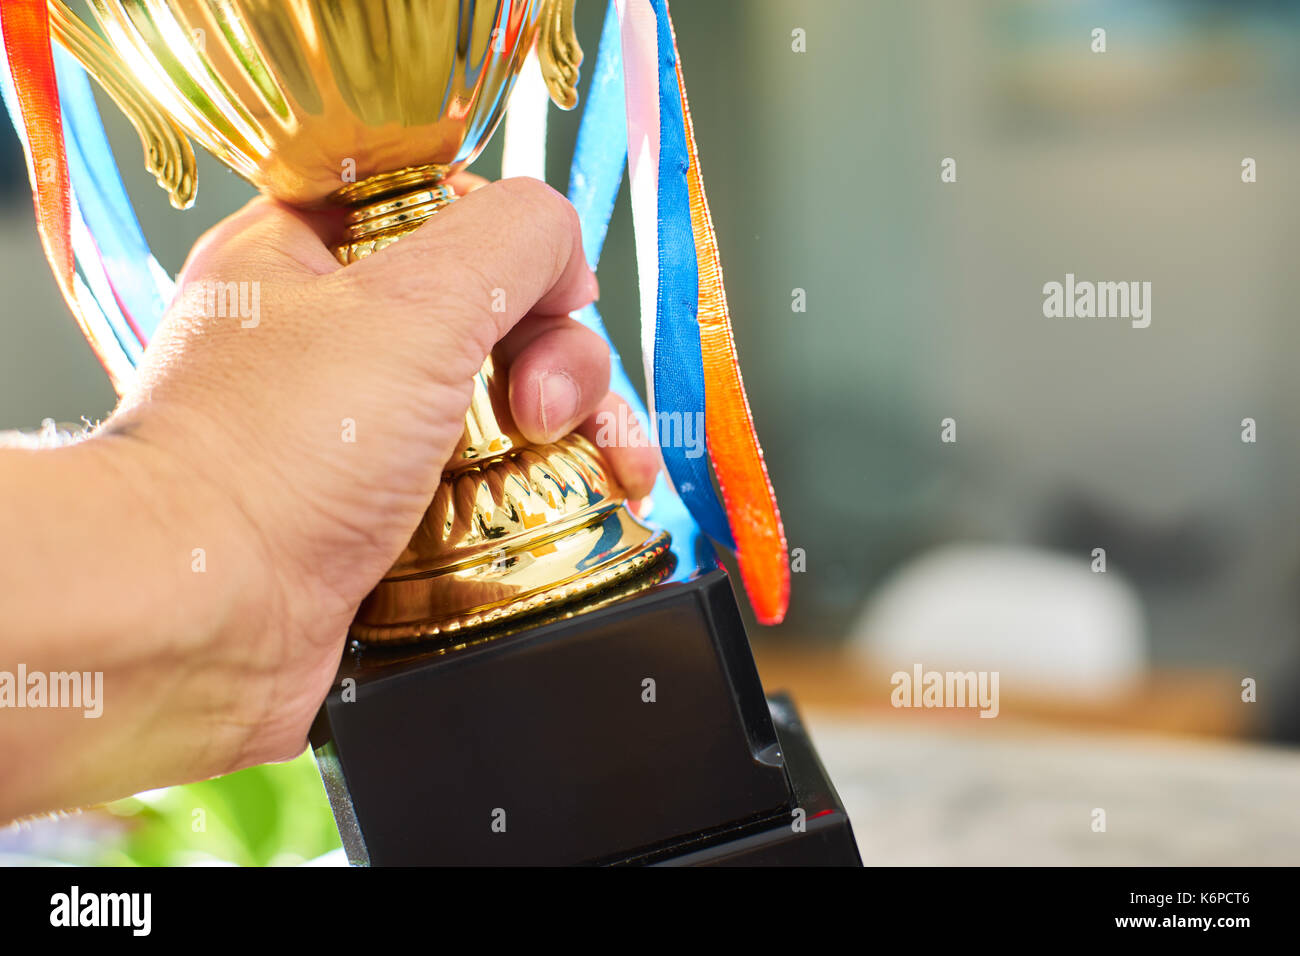 Young athlete holding up a gold trophy cup with space ready for your trophy design. - Stock Image